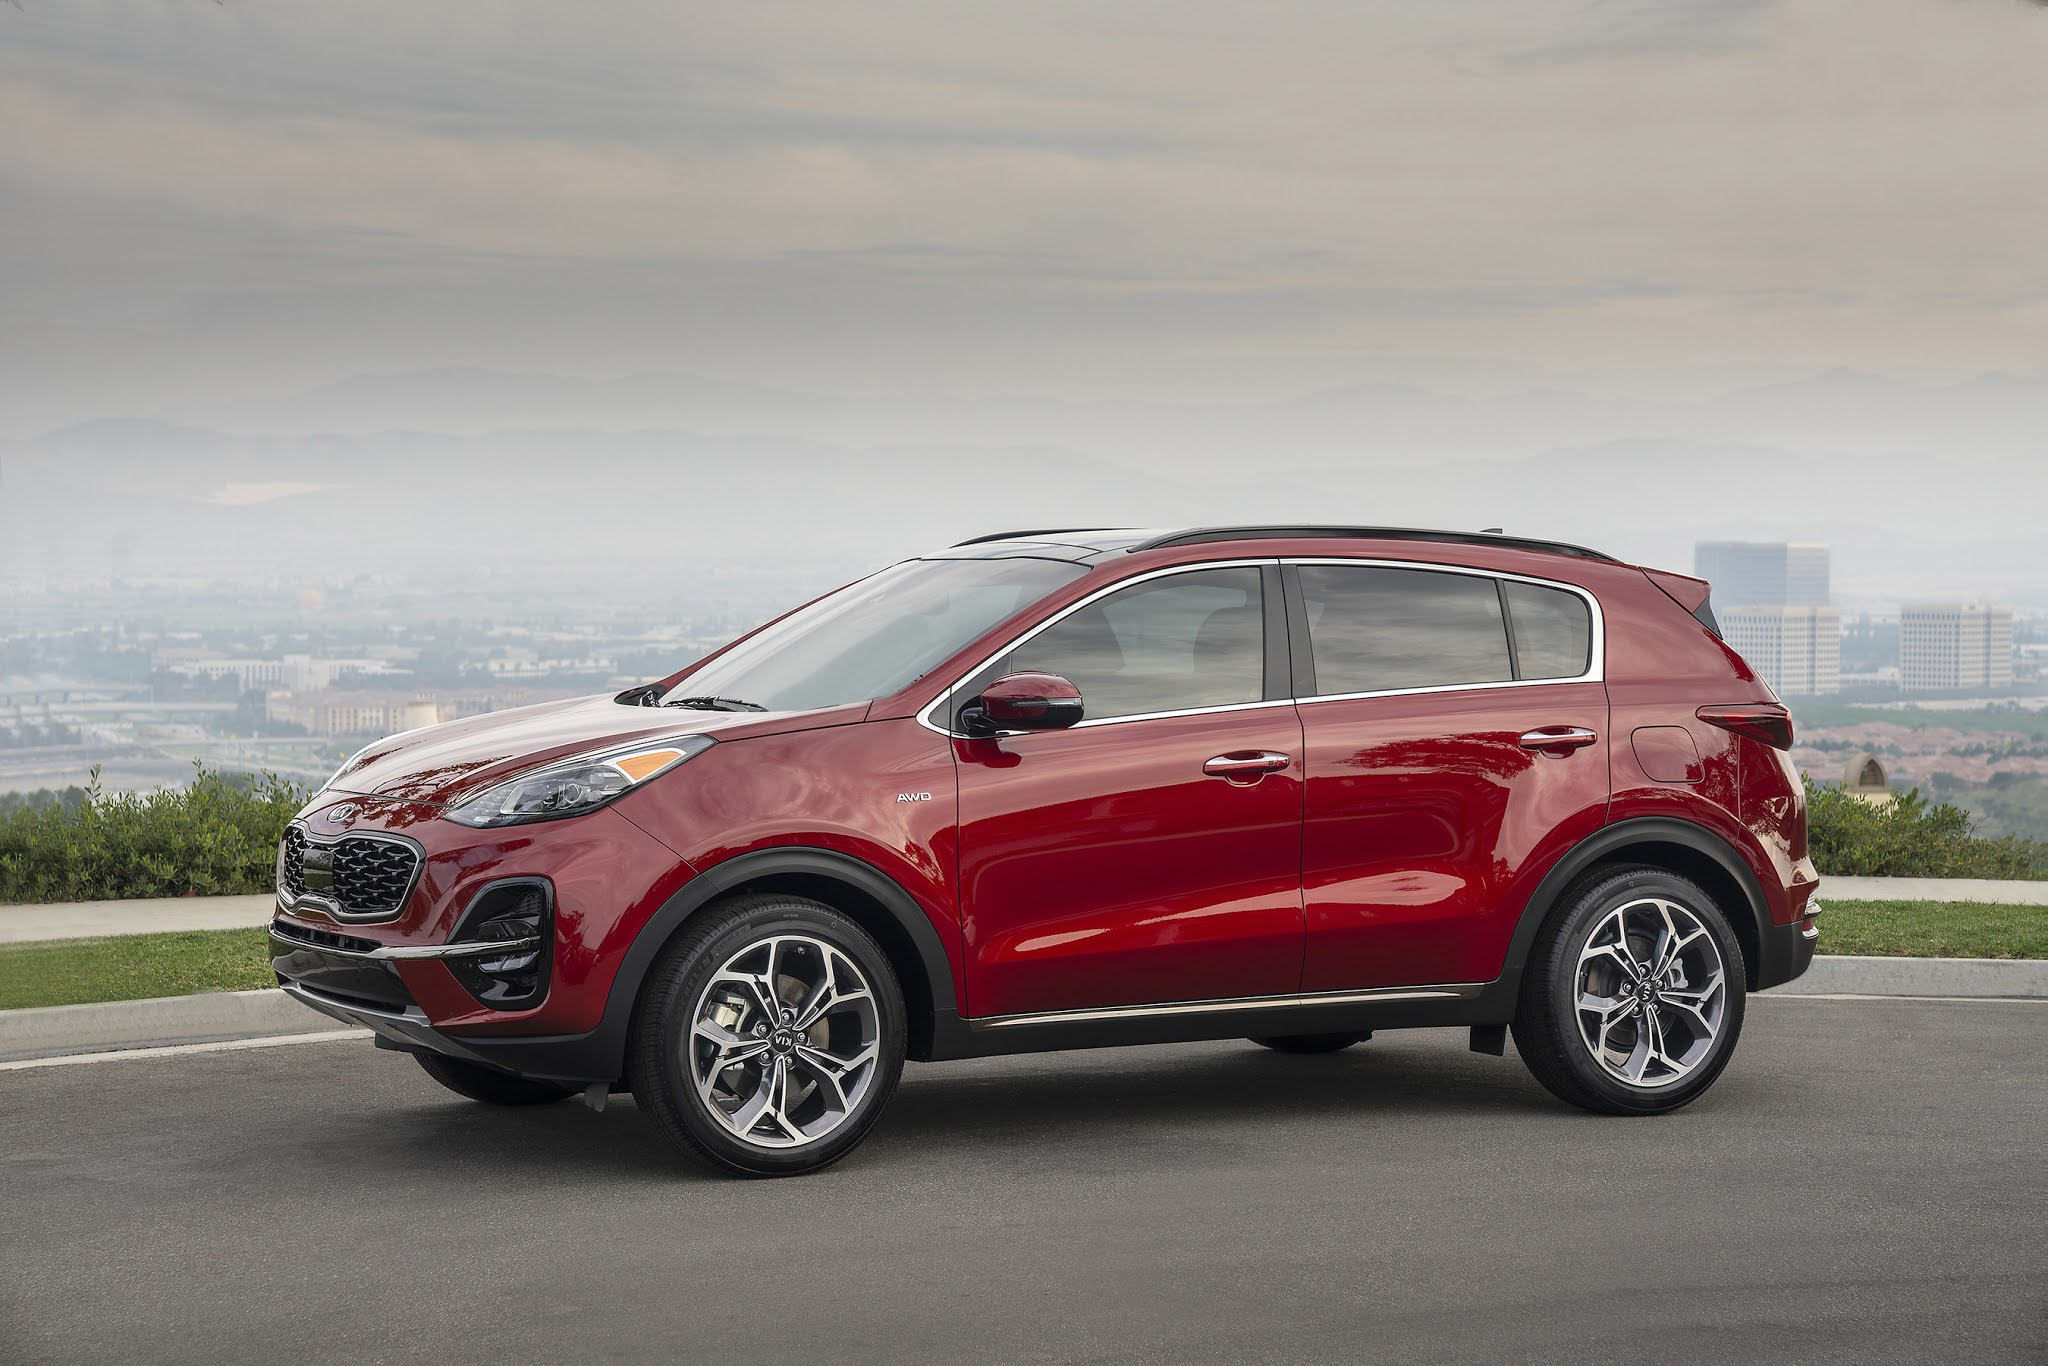 2022 Sportage Arrives With More Tech And Convenience Features